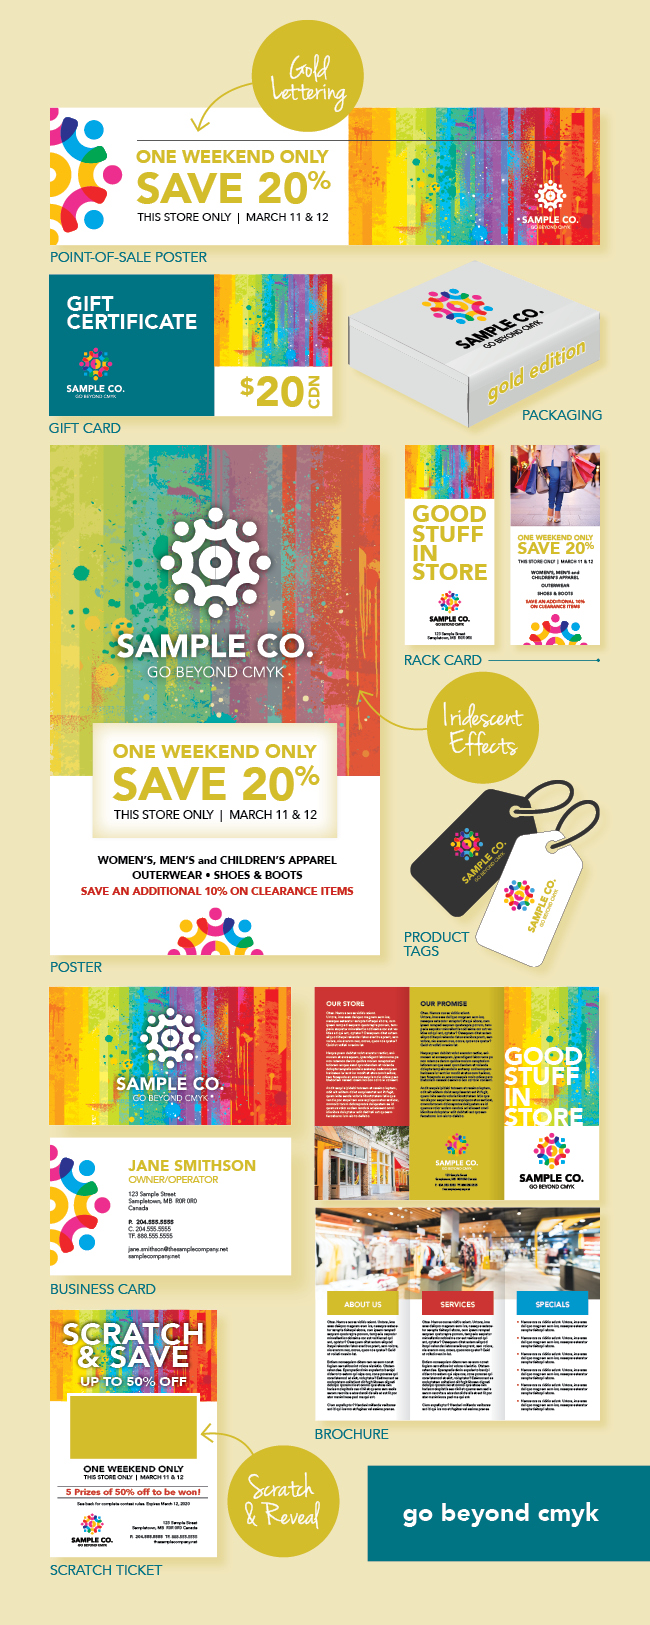 Samples of posters, brochures, product tags, scratch and reveal tickets, business cards and other stationery that can be printed using a gold metallic underlay.